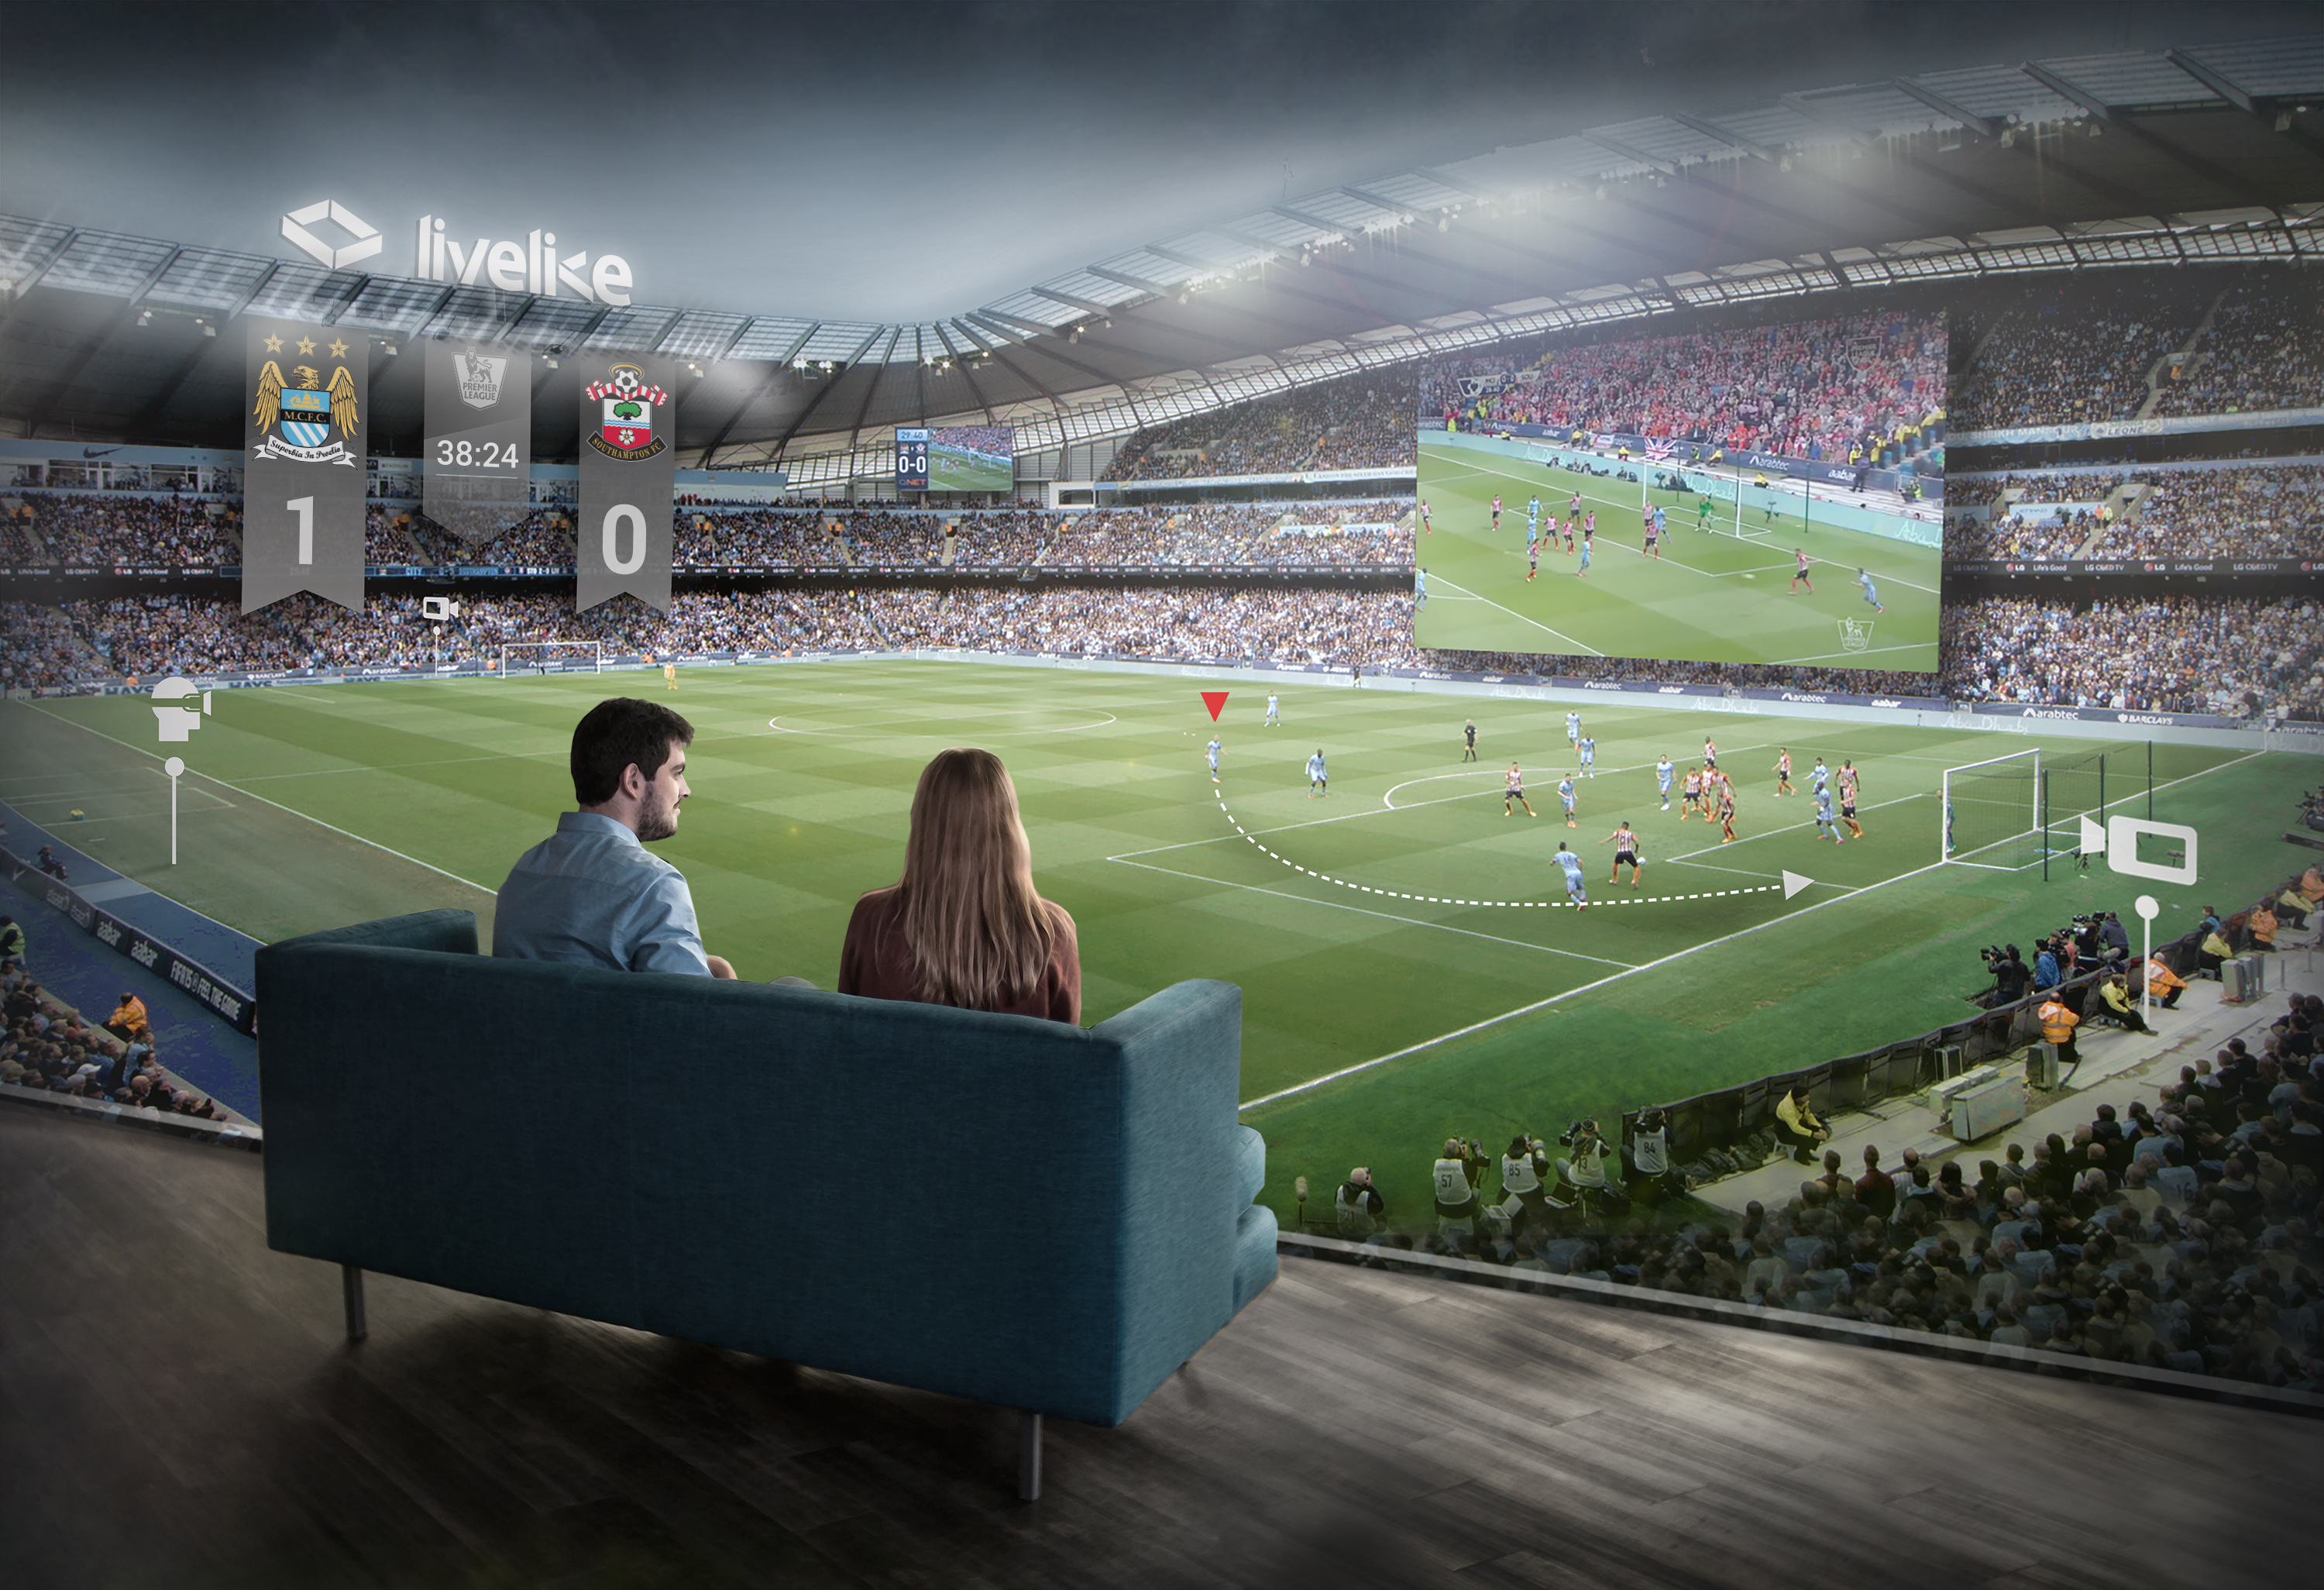 LiveLike VR is brnging sports teams like Manchester City to new sports VR app.